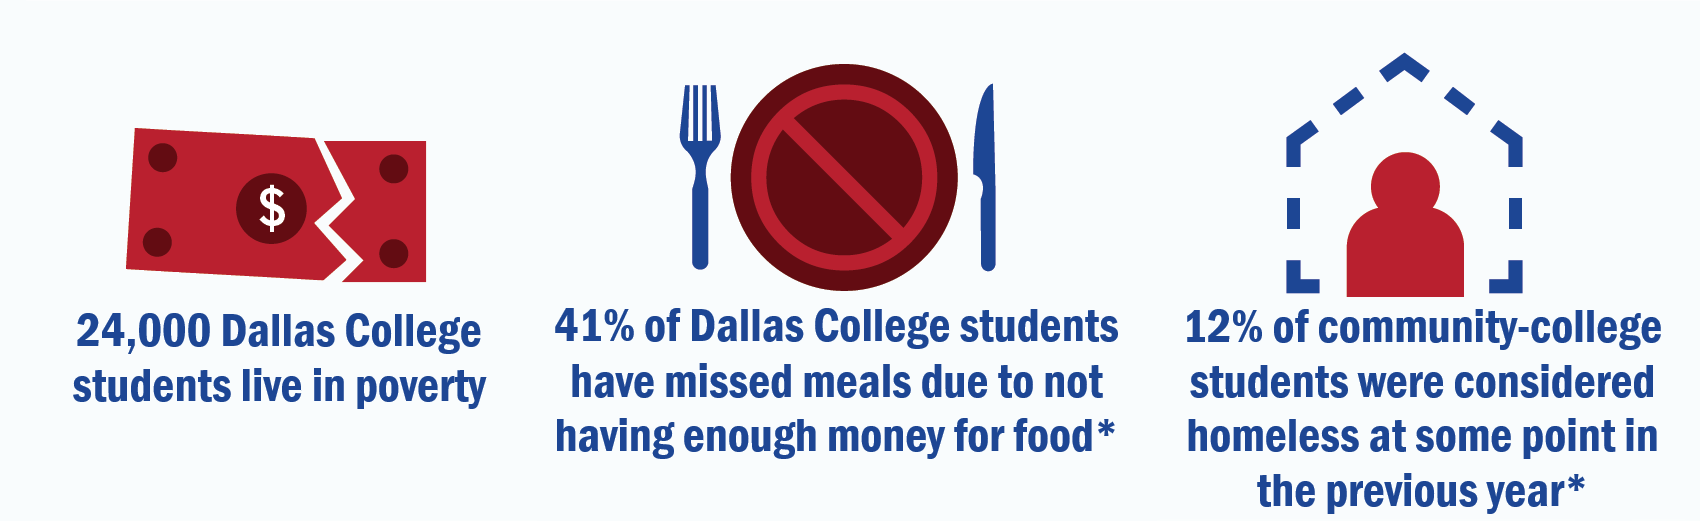 41% of Dallas College students have missed meals due to not having enough money for food; 12% of community-college students were considered homeless at some point in the previous year